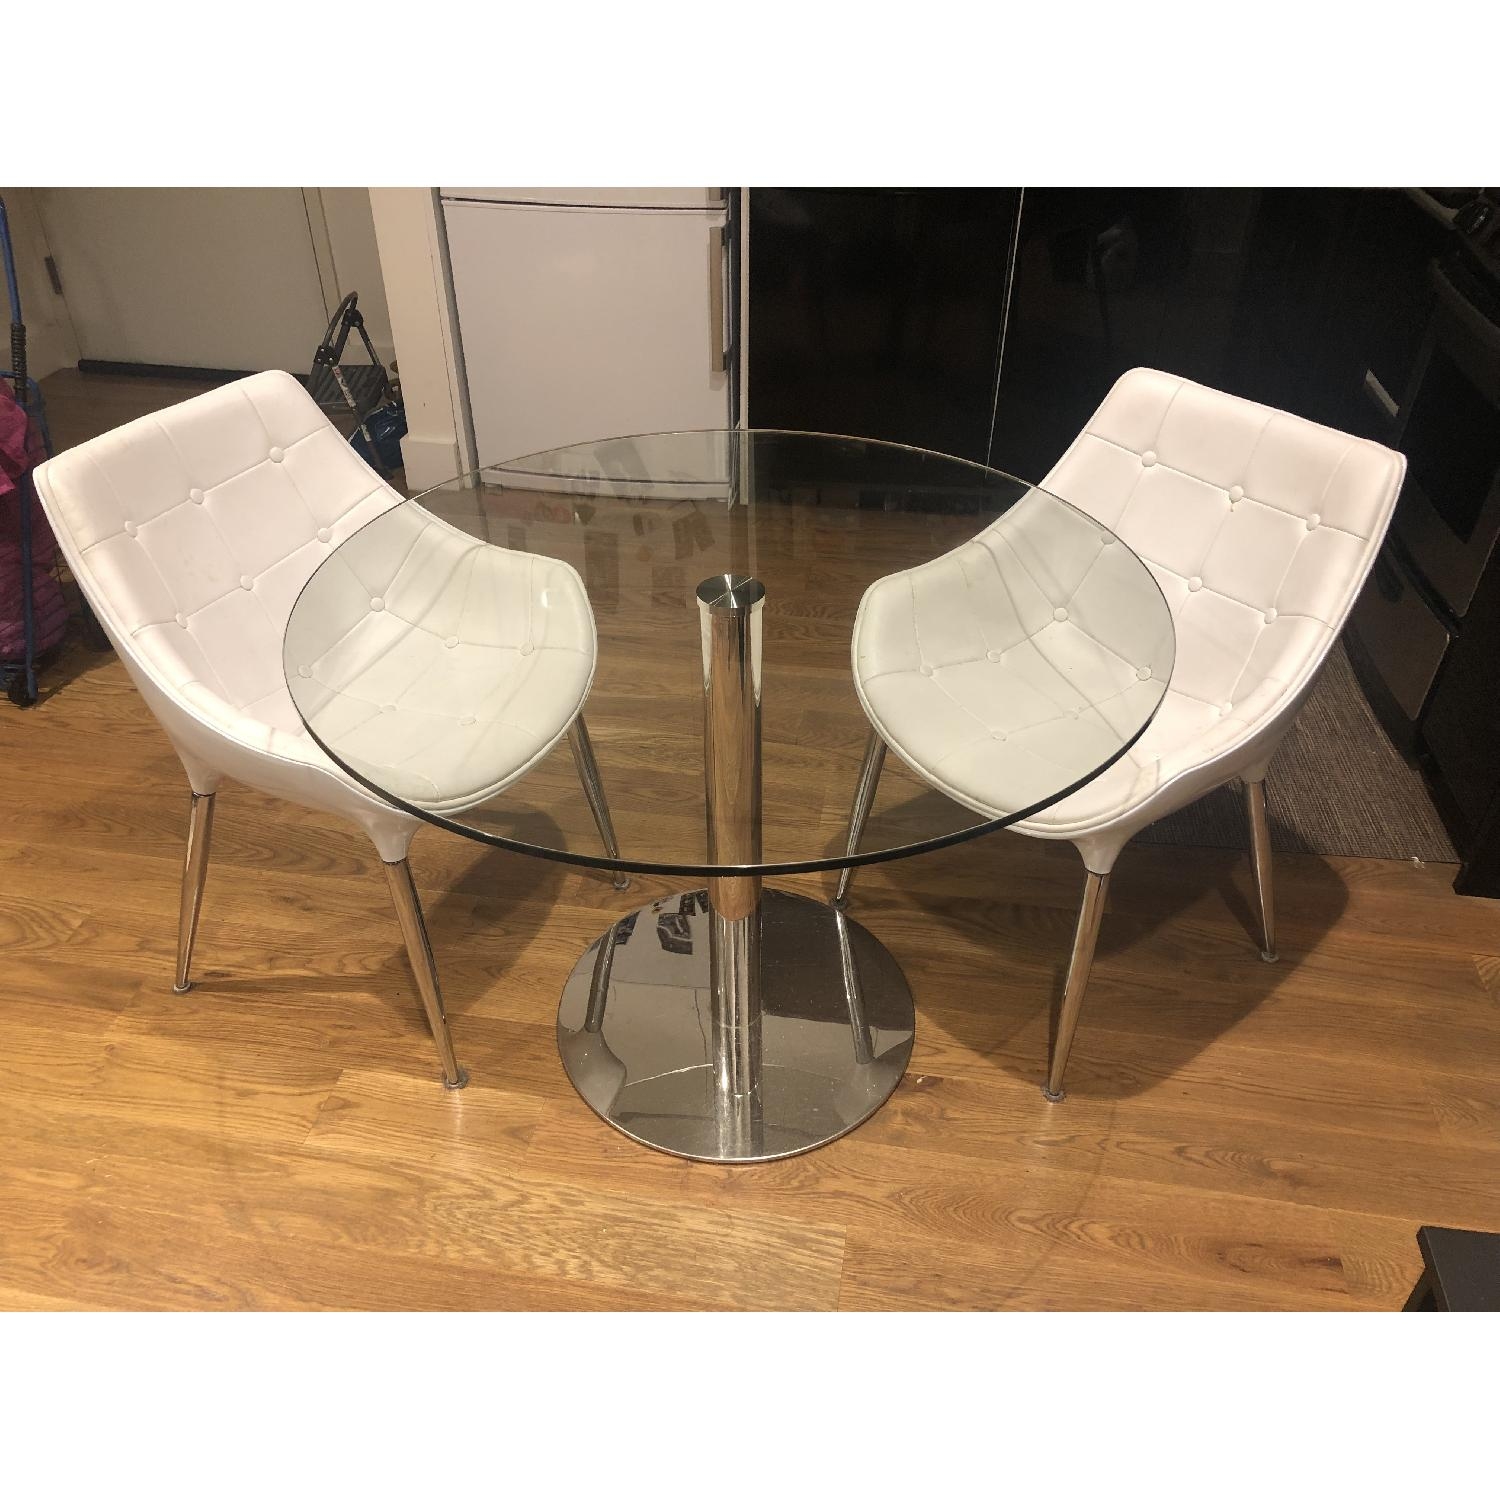 Modani Eve Dining Table w/ 2 Chairs - image-2